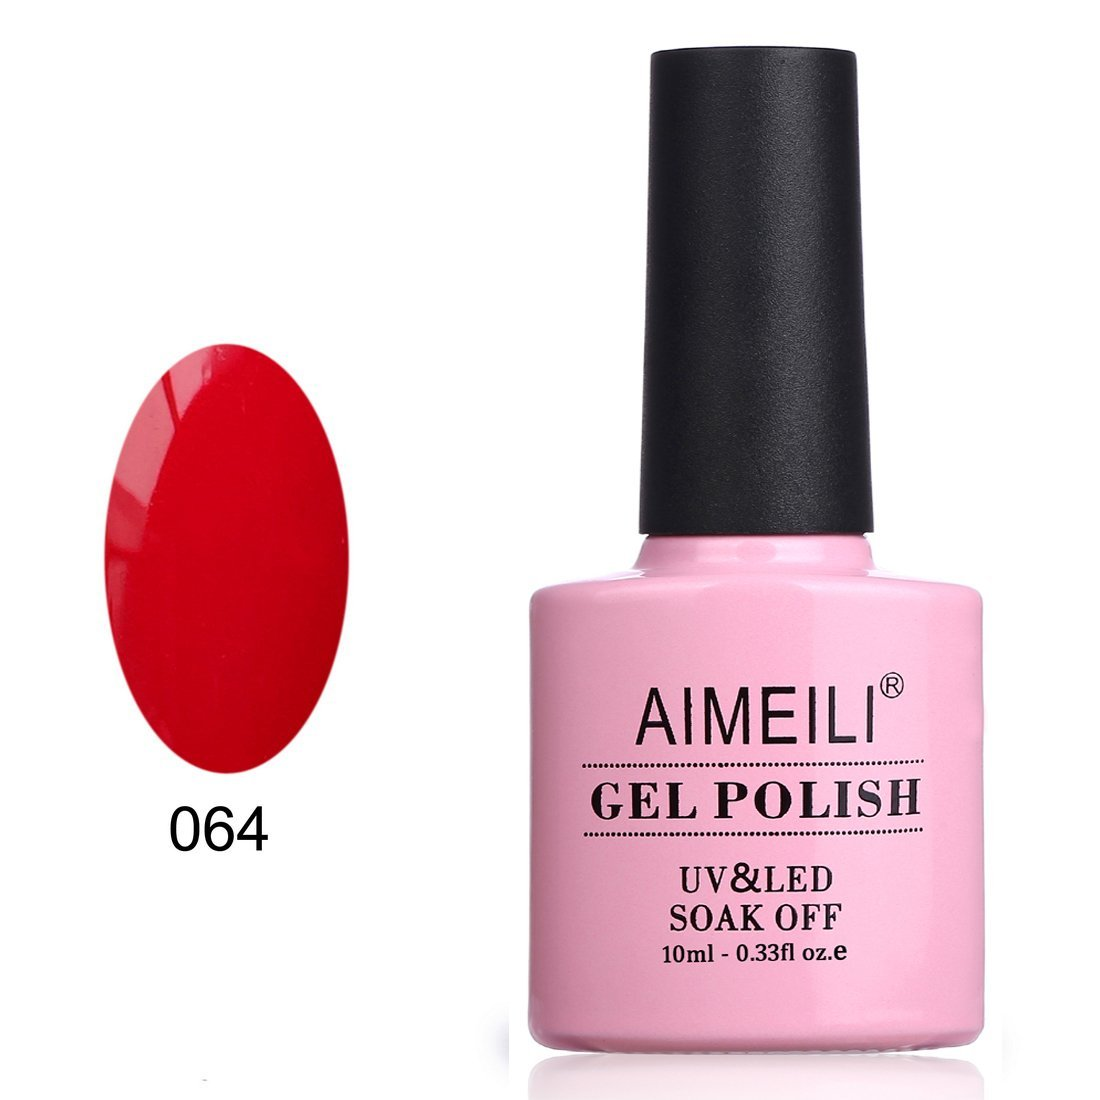 AIMEILI Soak Off UV LED Gel Nail Polish - Pillar Box Red (064) 10ml